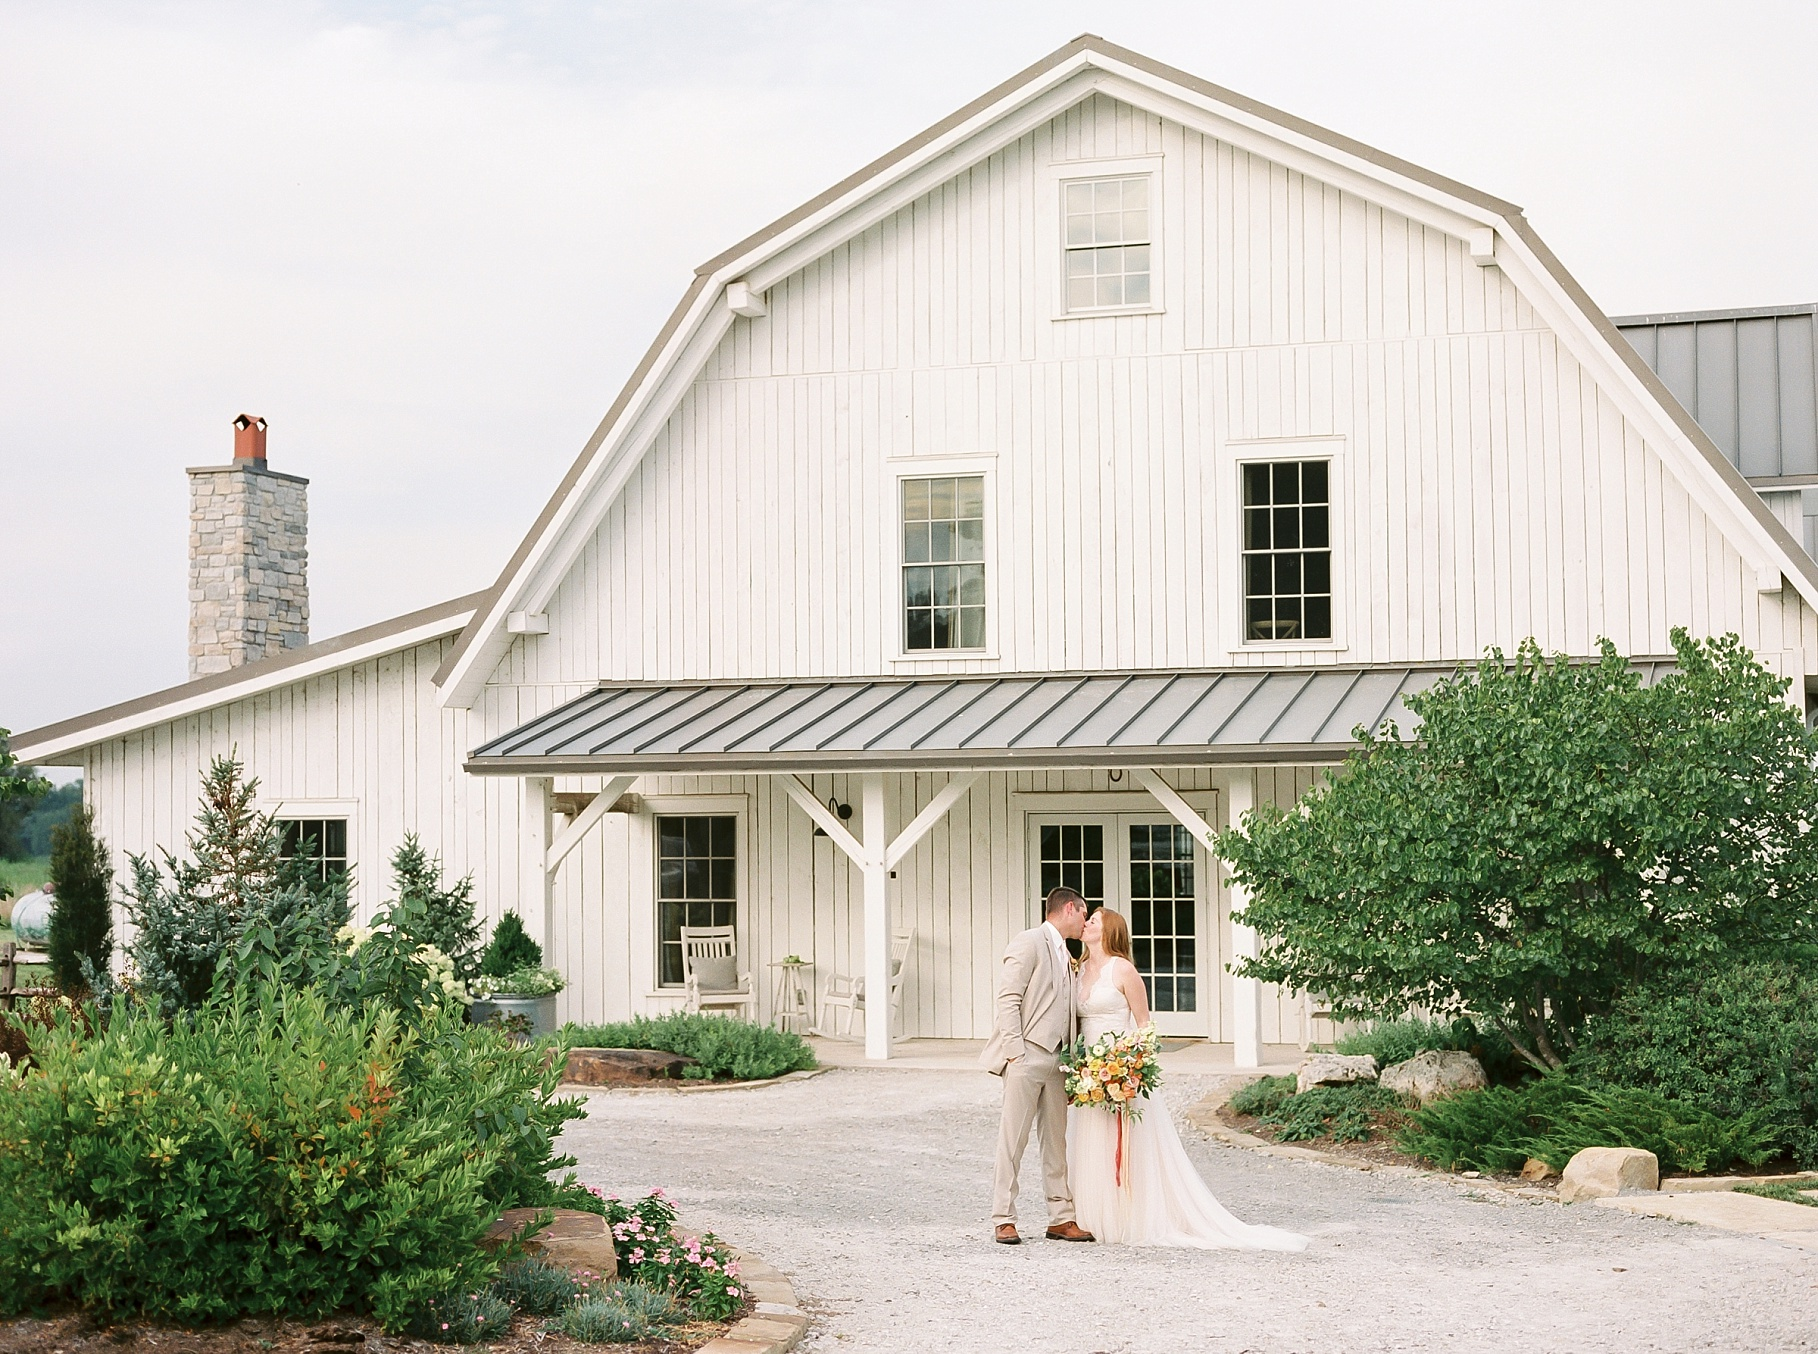 Late Summer Wedding With Pastel Toned Soiree at Blue Bell Farm by Kelsi Kliethermes Photography Best Columbia Missouri Wedding Photographer_0026.jpg